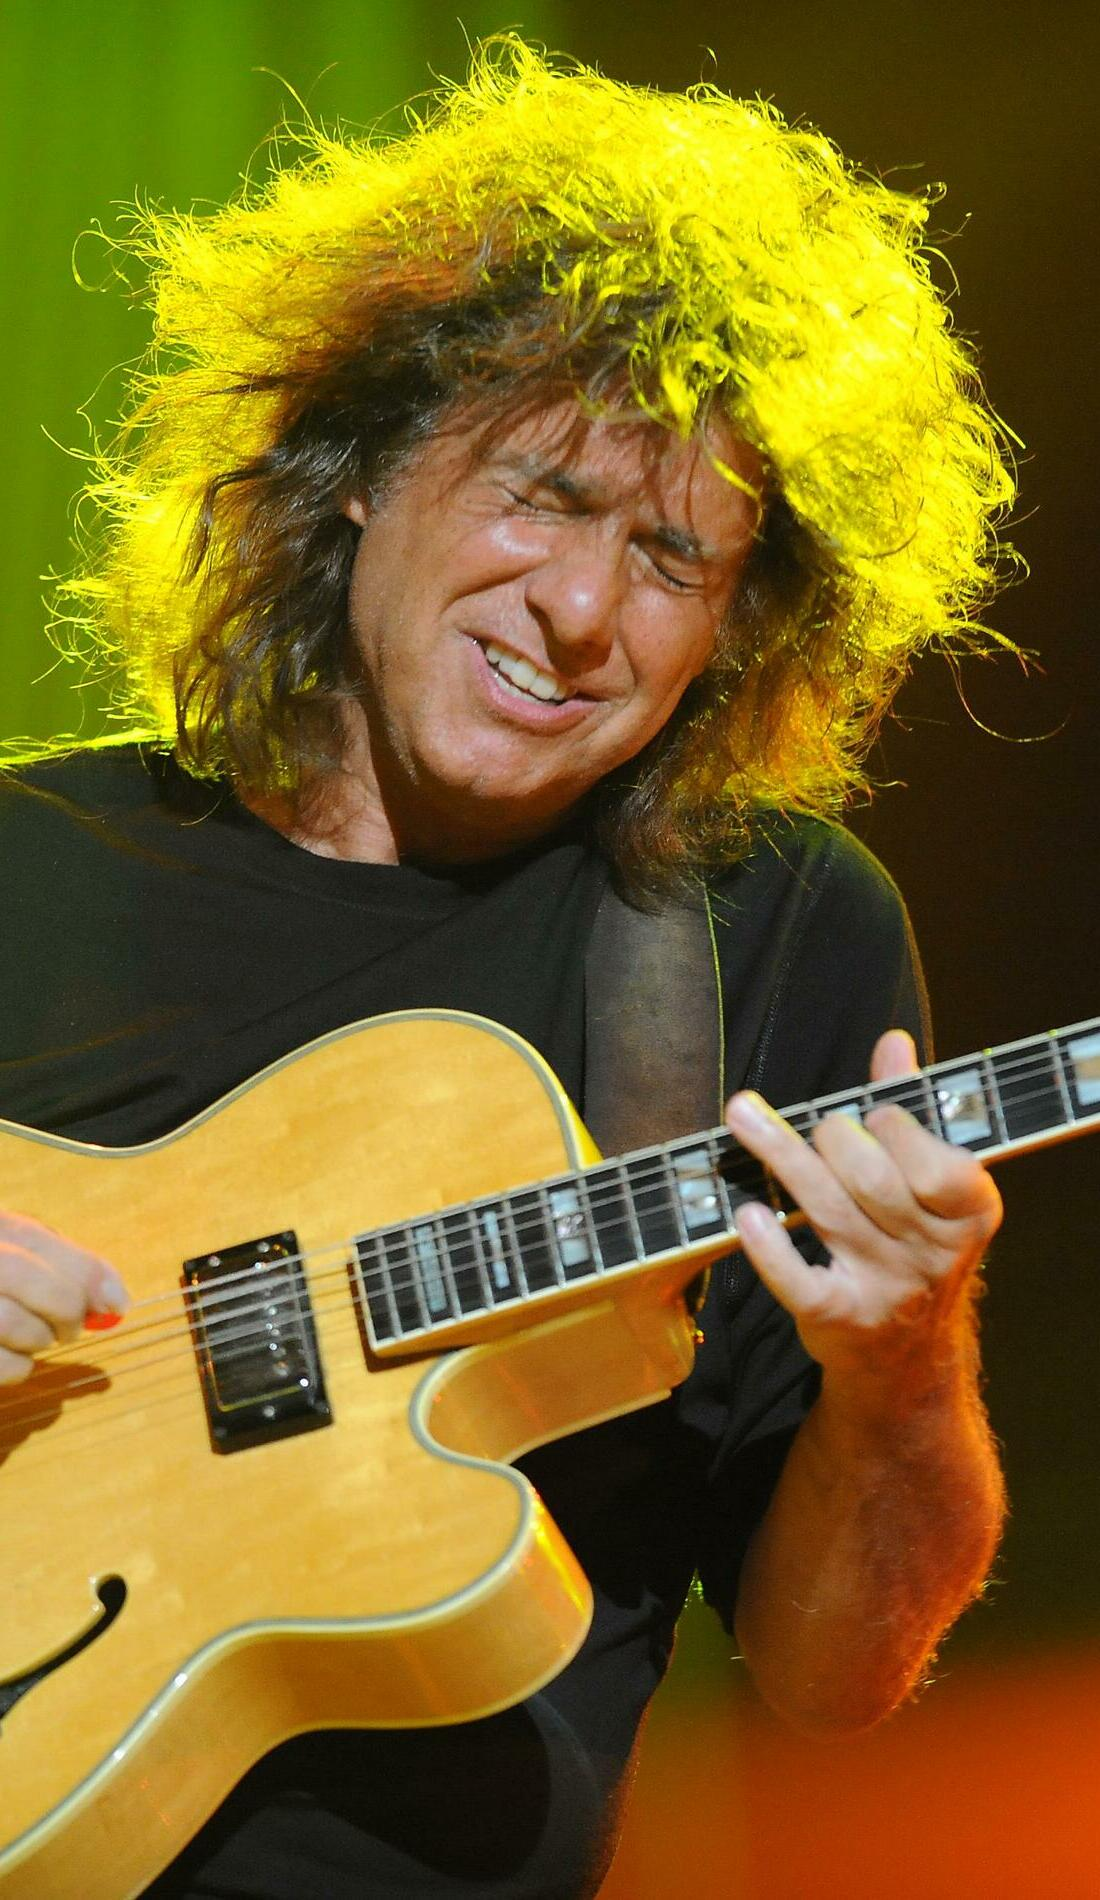 A Pat Metheny live event